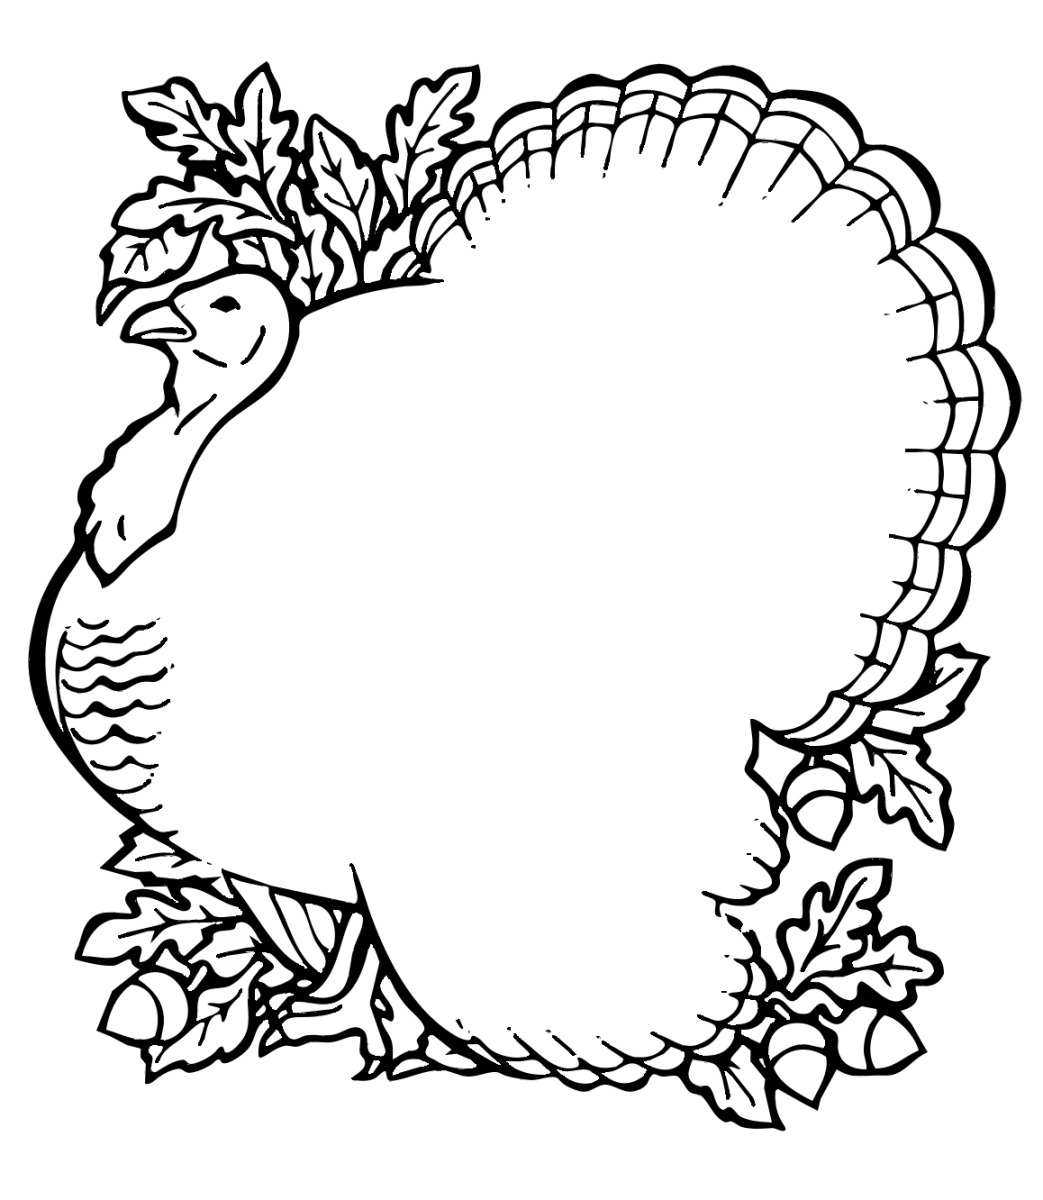 Thanksgiving Coloring Pages for Kids | Coloring Pages To Print